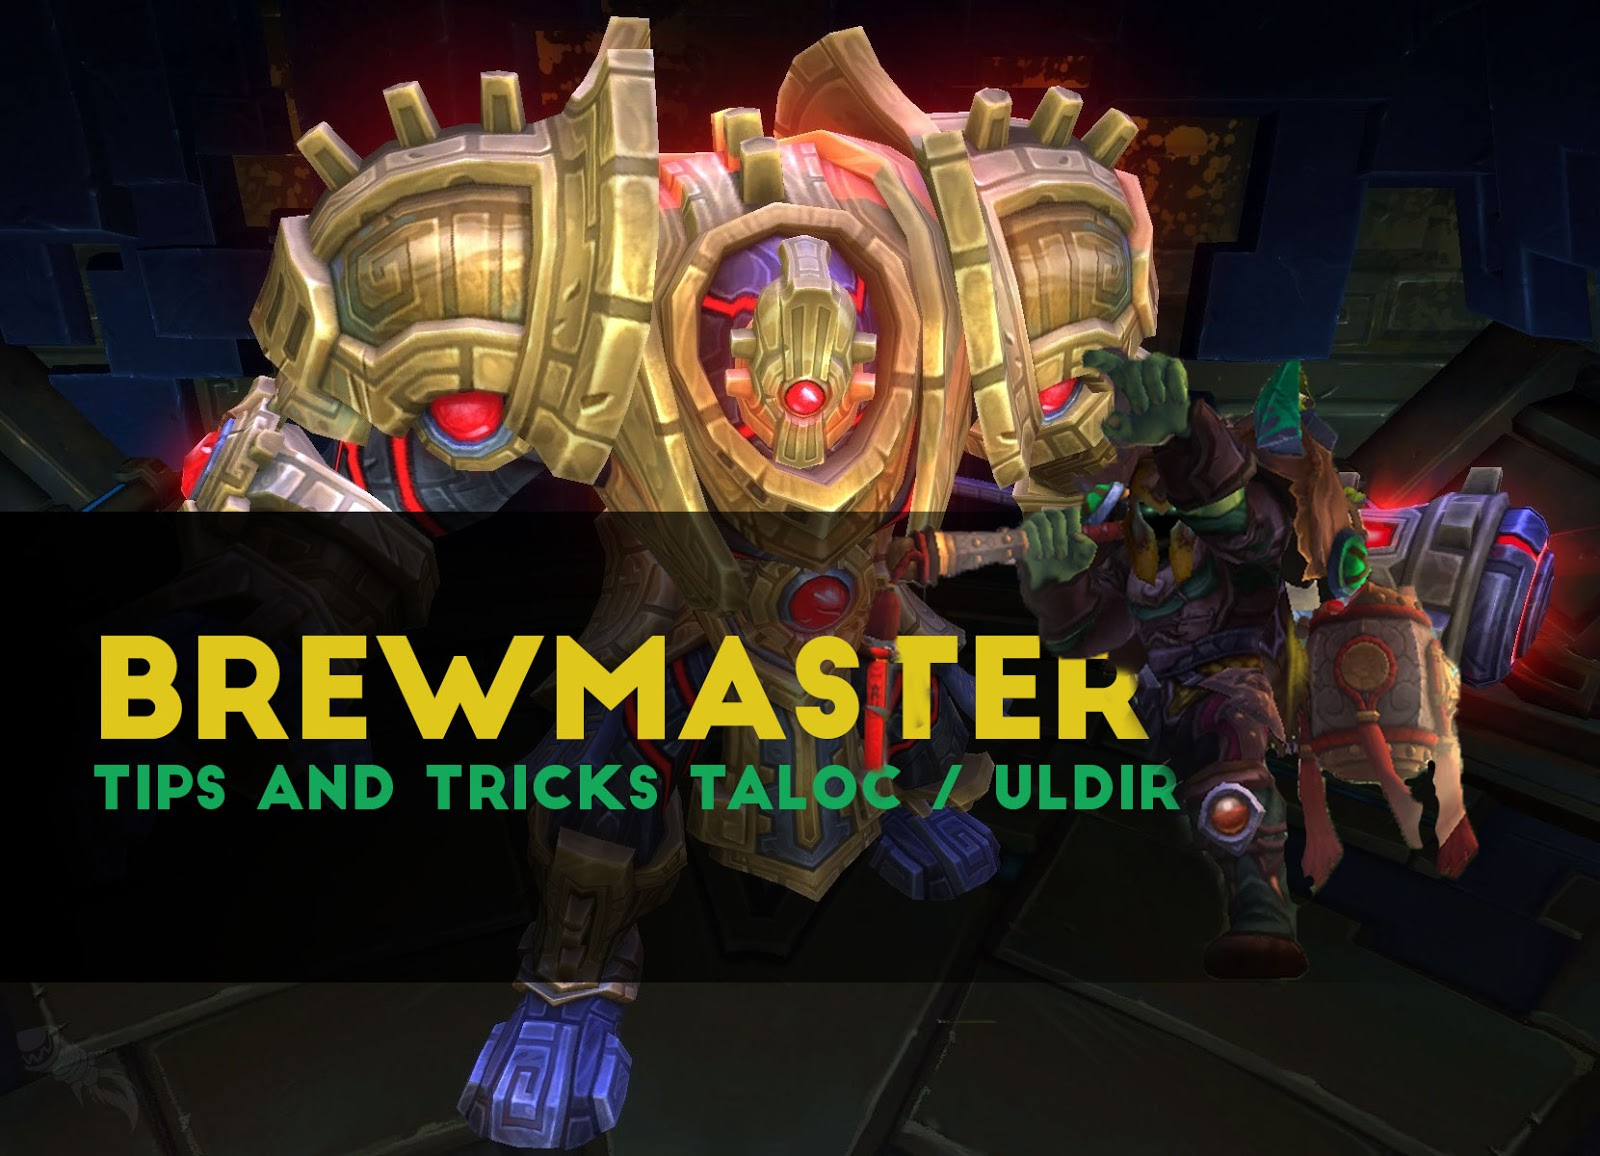 Brewmaster Tips and Tricks TALOC / ULDIR - Patch 8.0